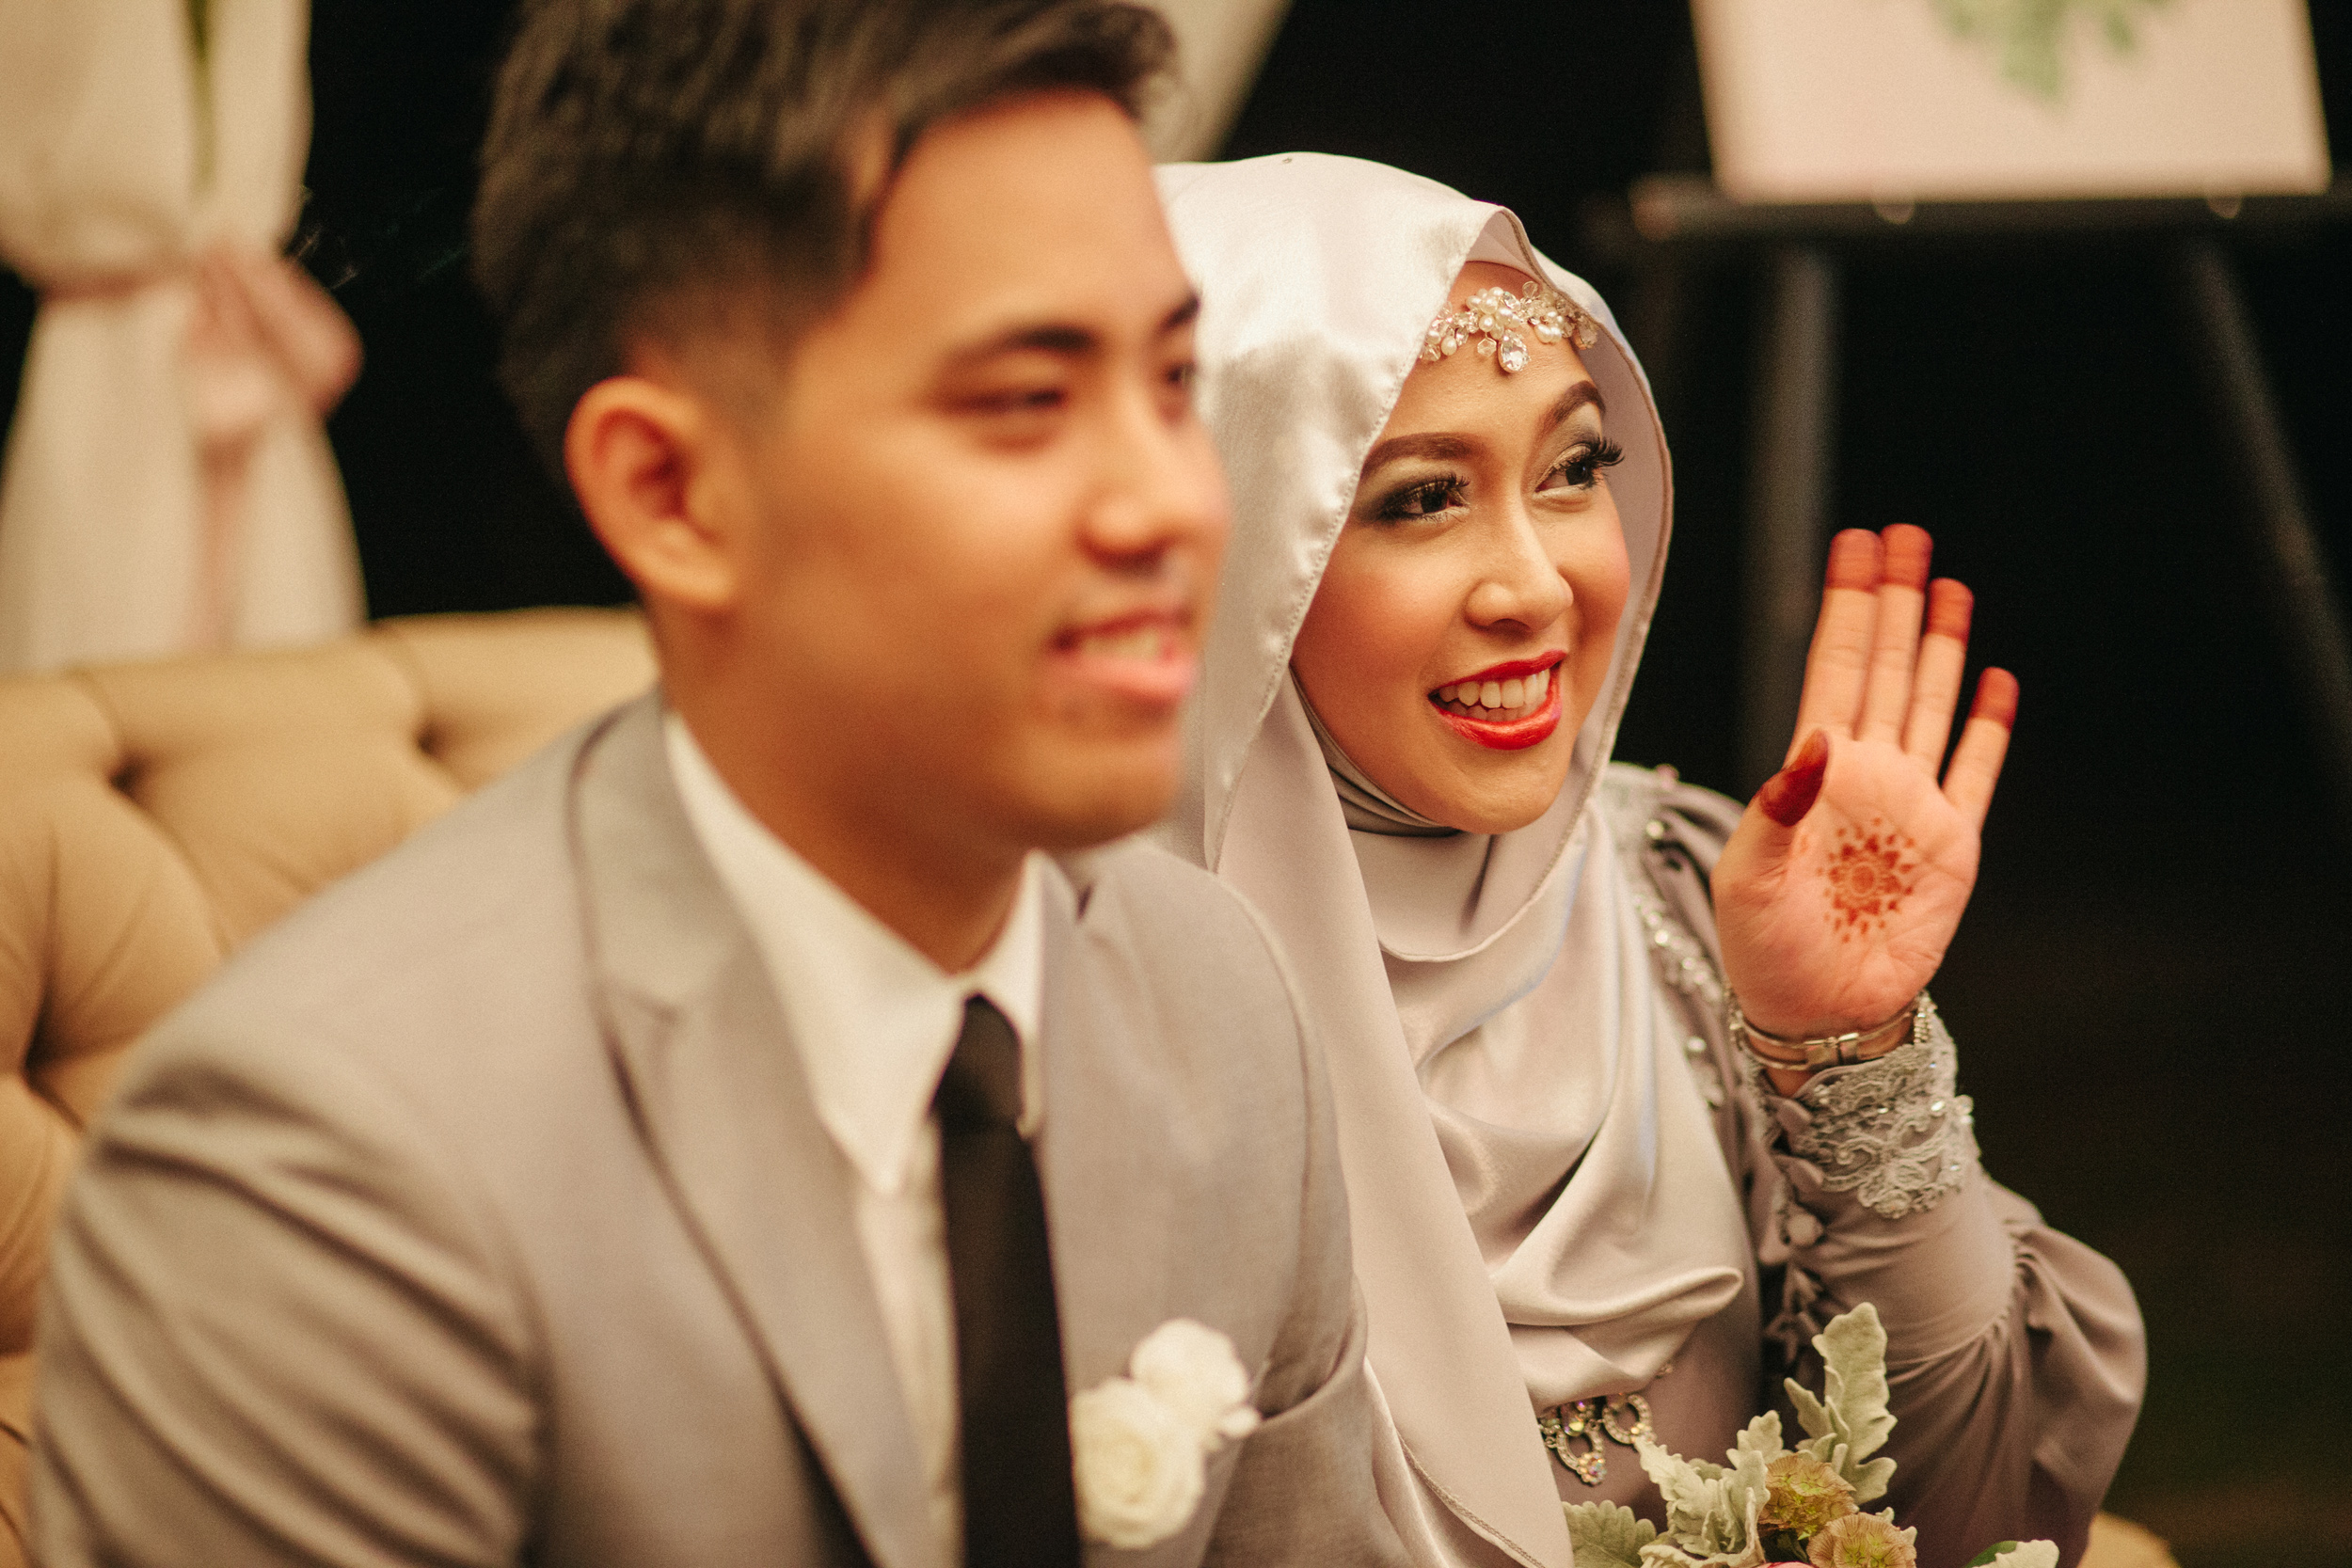 singapore-wedding-photographer-wemadethese-aisyah-helmi-78.jpg